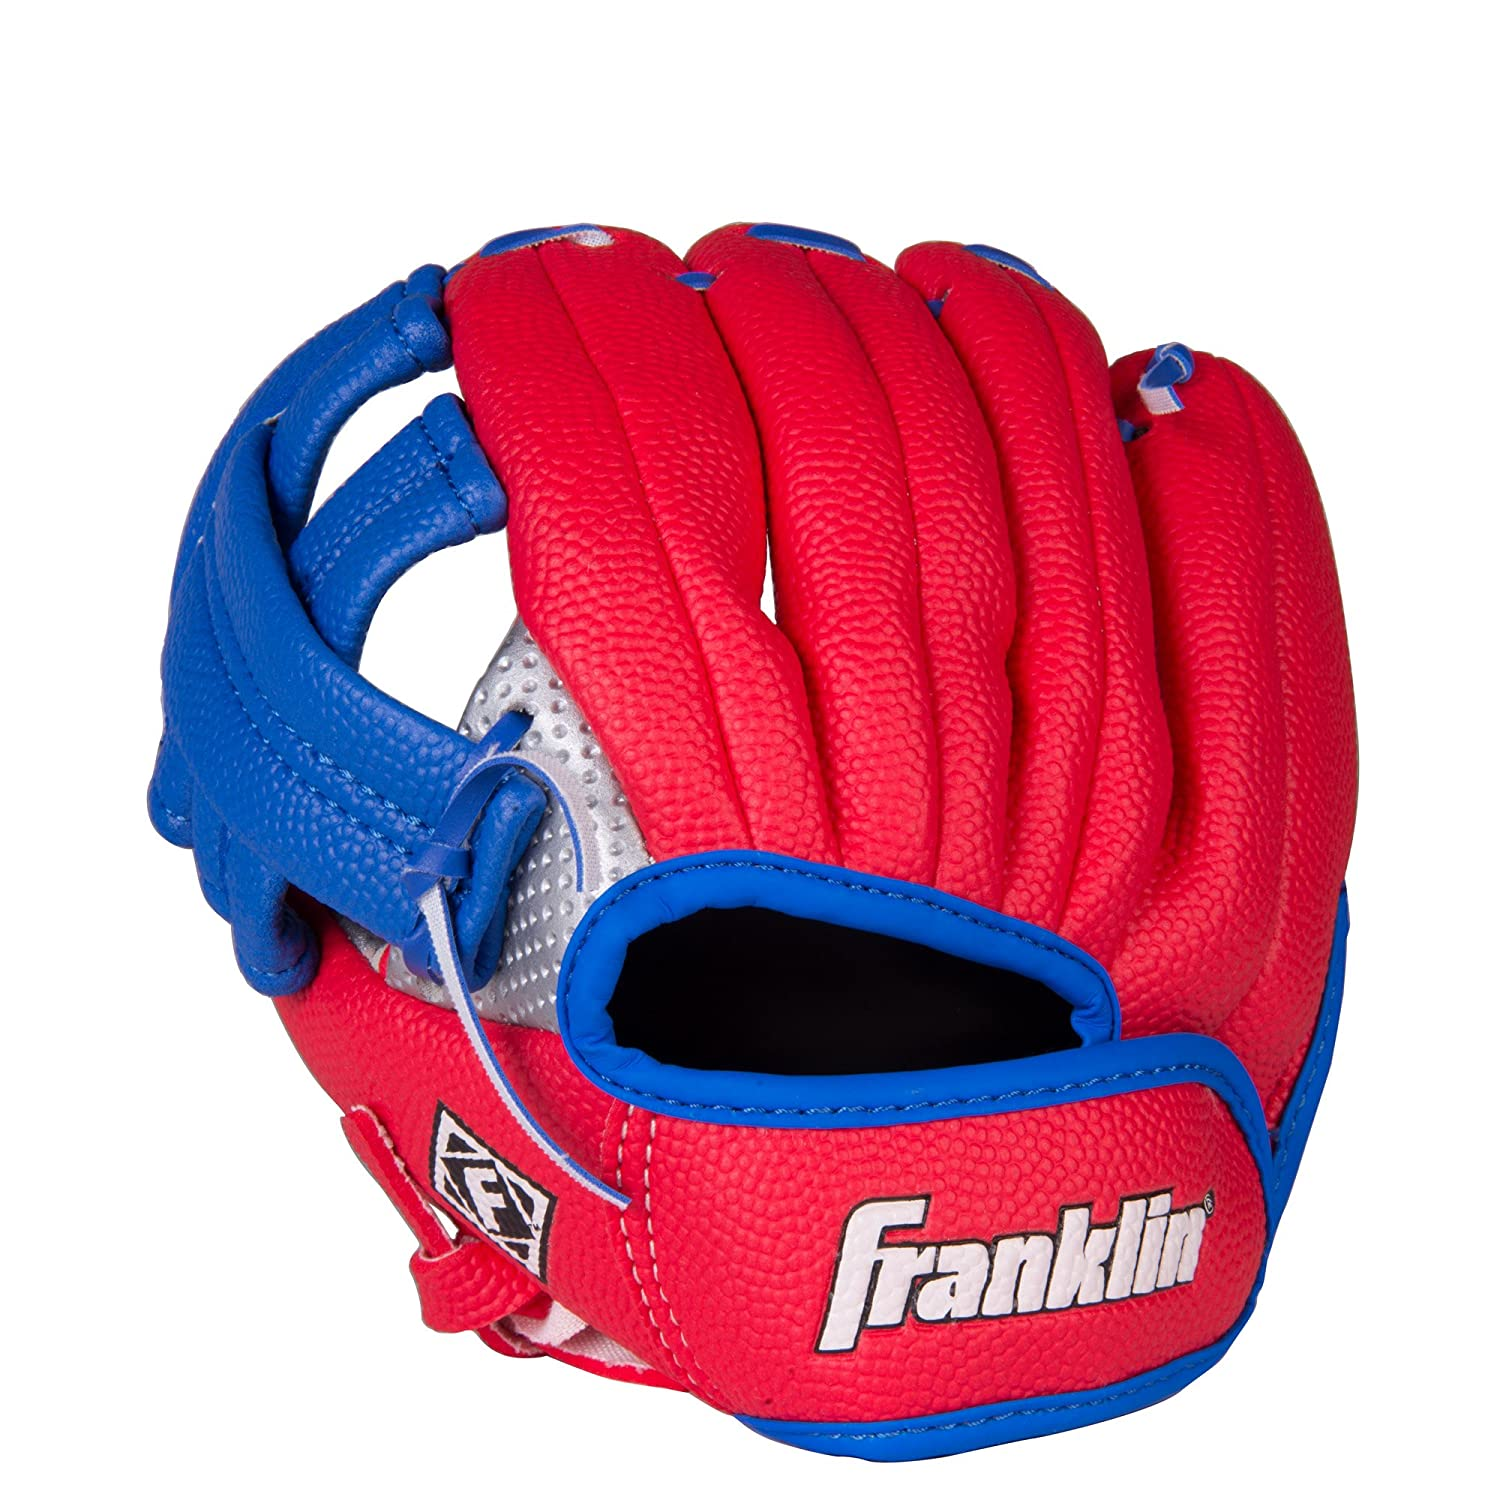 Top 5 Best Youth Baseball Gloves Reviews in 2018, updated ...